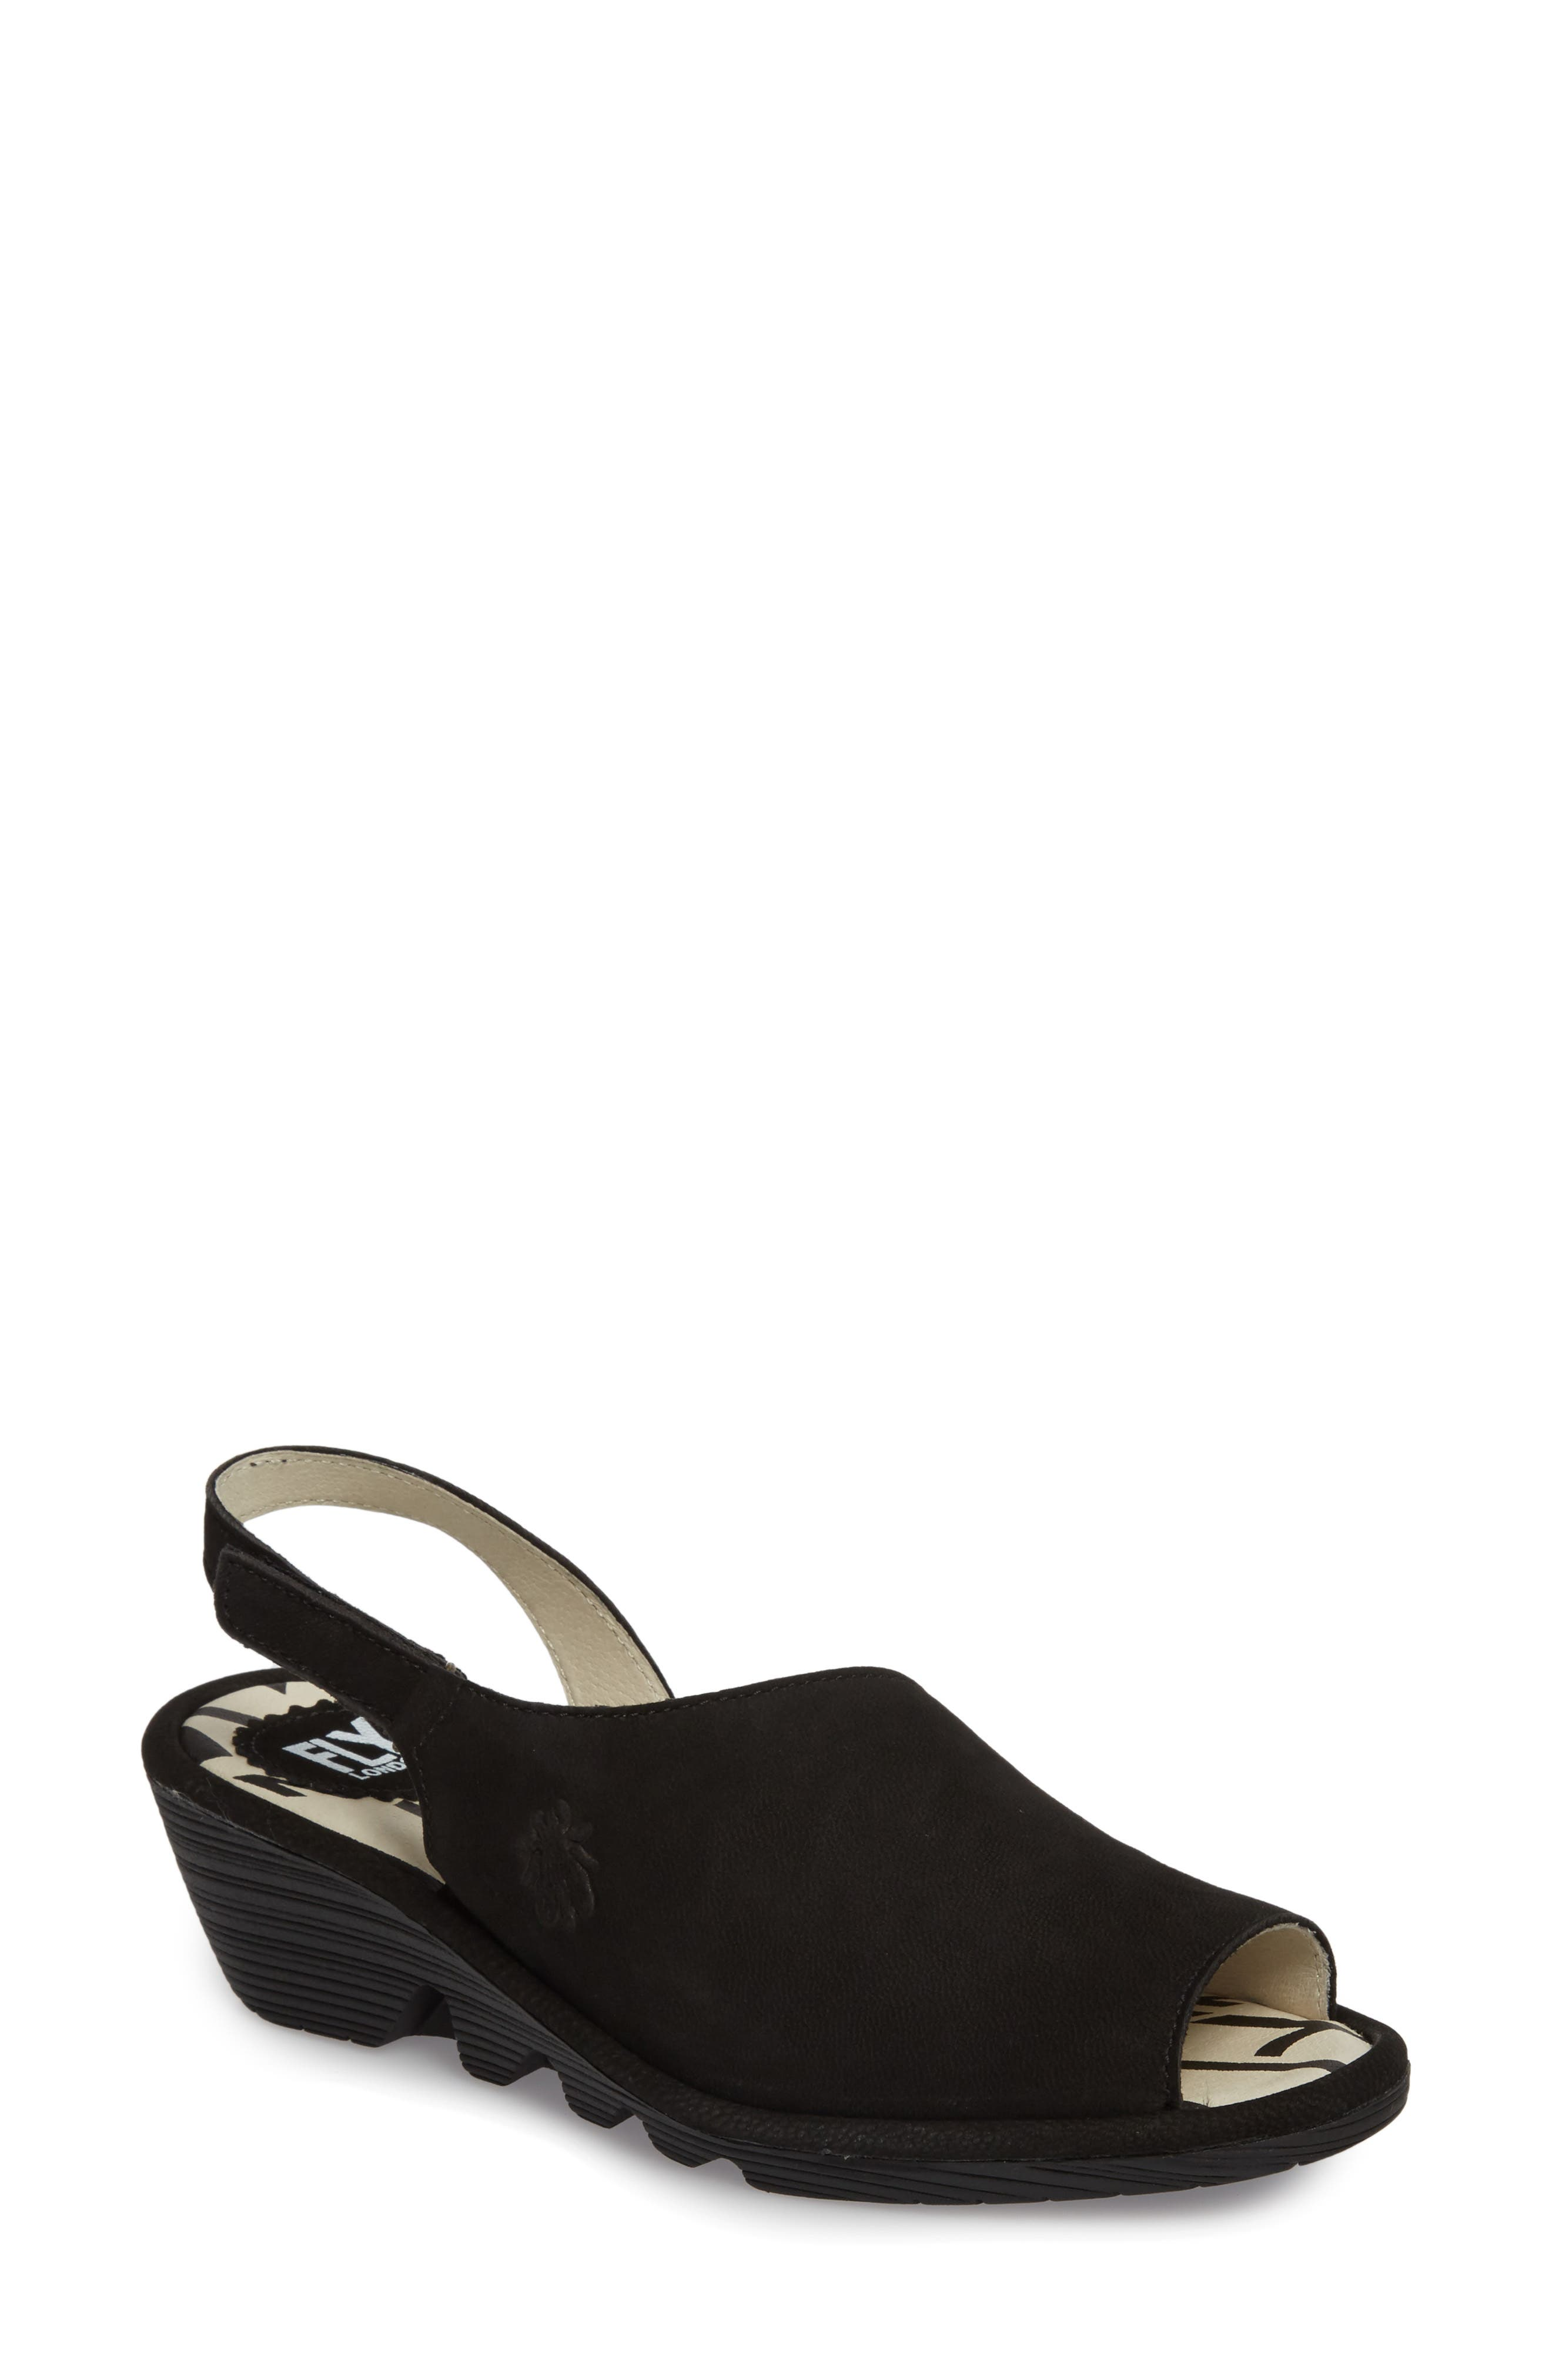 FLY LONDON Palp Wedge Sandal, Main, color, BLACK CUPIDO LEATHER